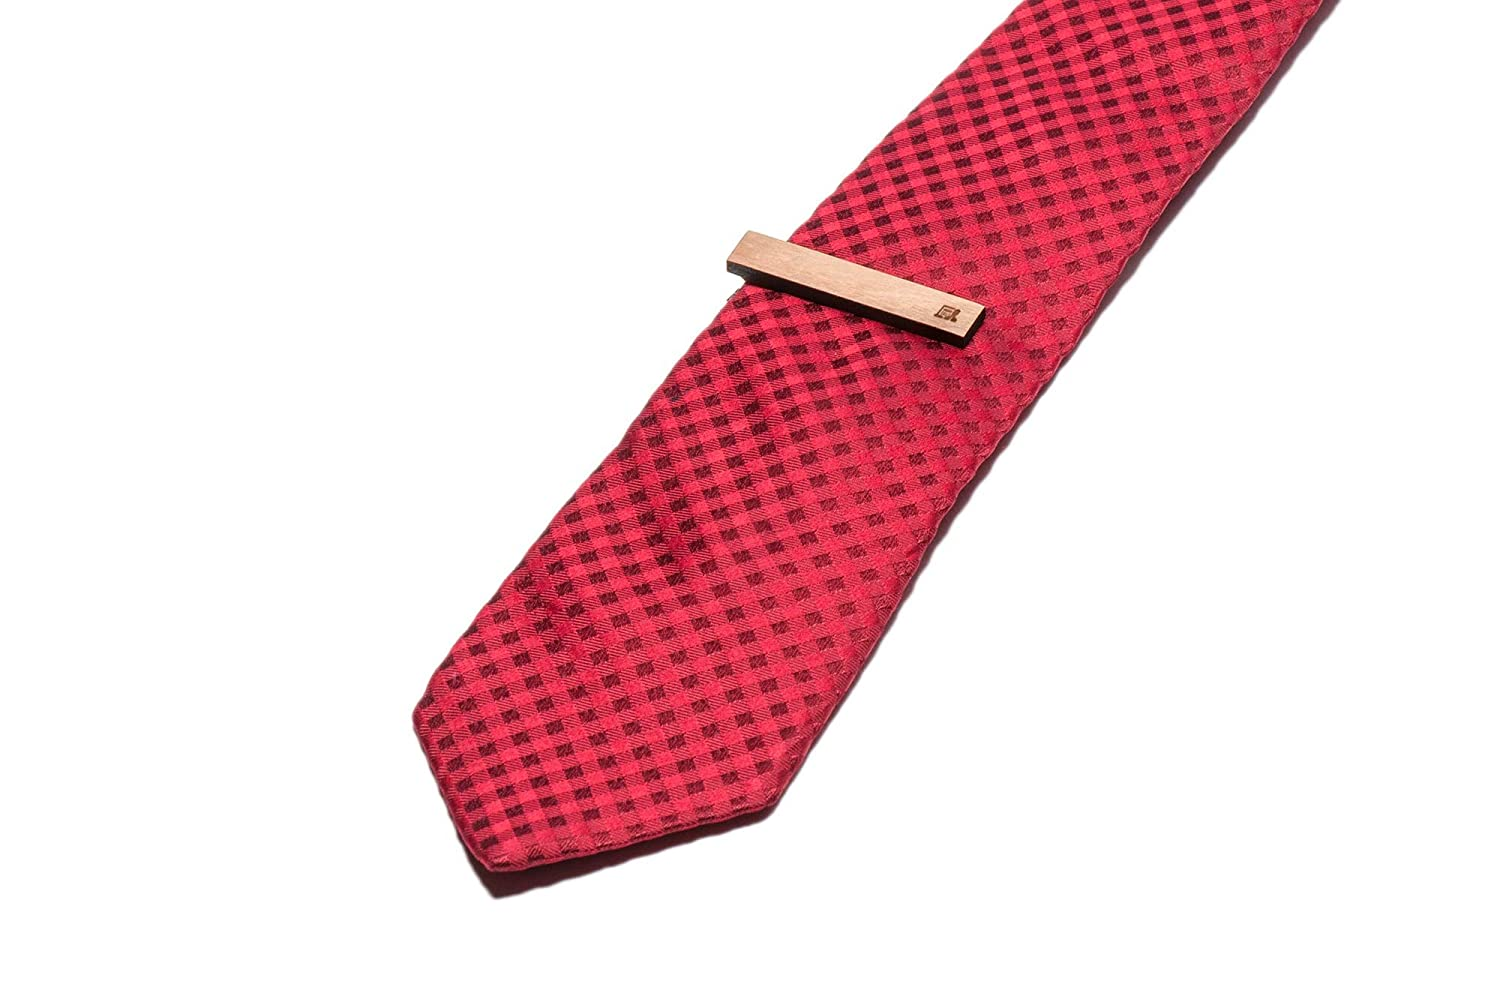 Cherry Wood Tie Bar Engraved in The USA Wooden Accessories Company Wooden Tie Clips with Laser Engraved Programmer Design